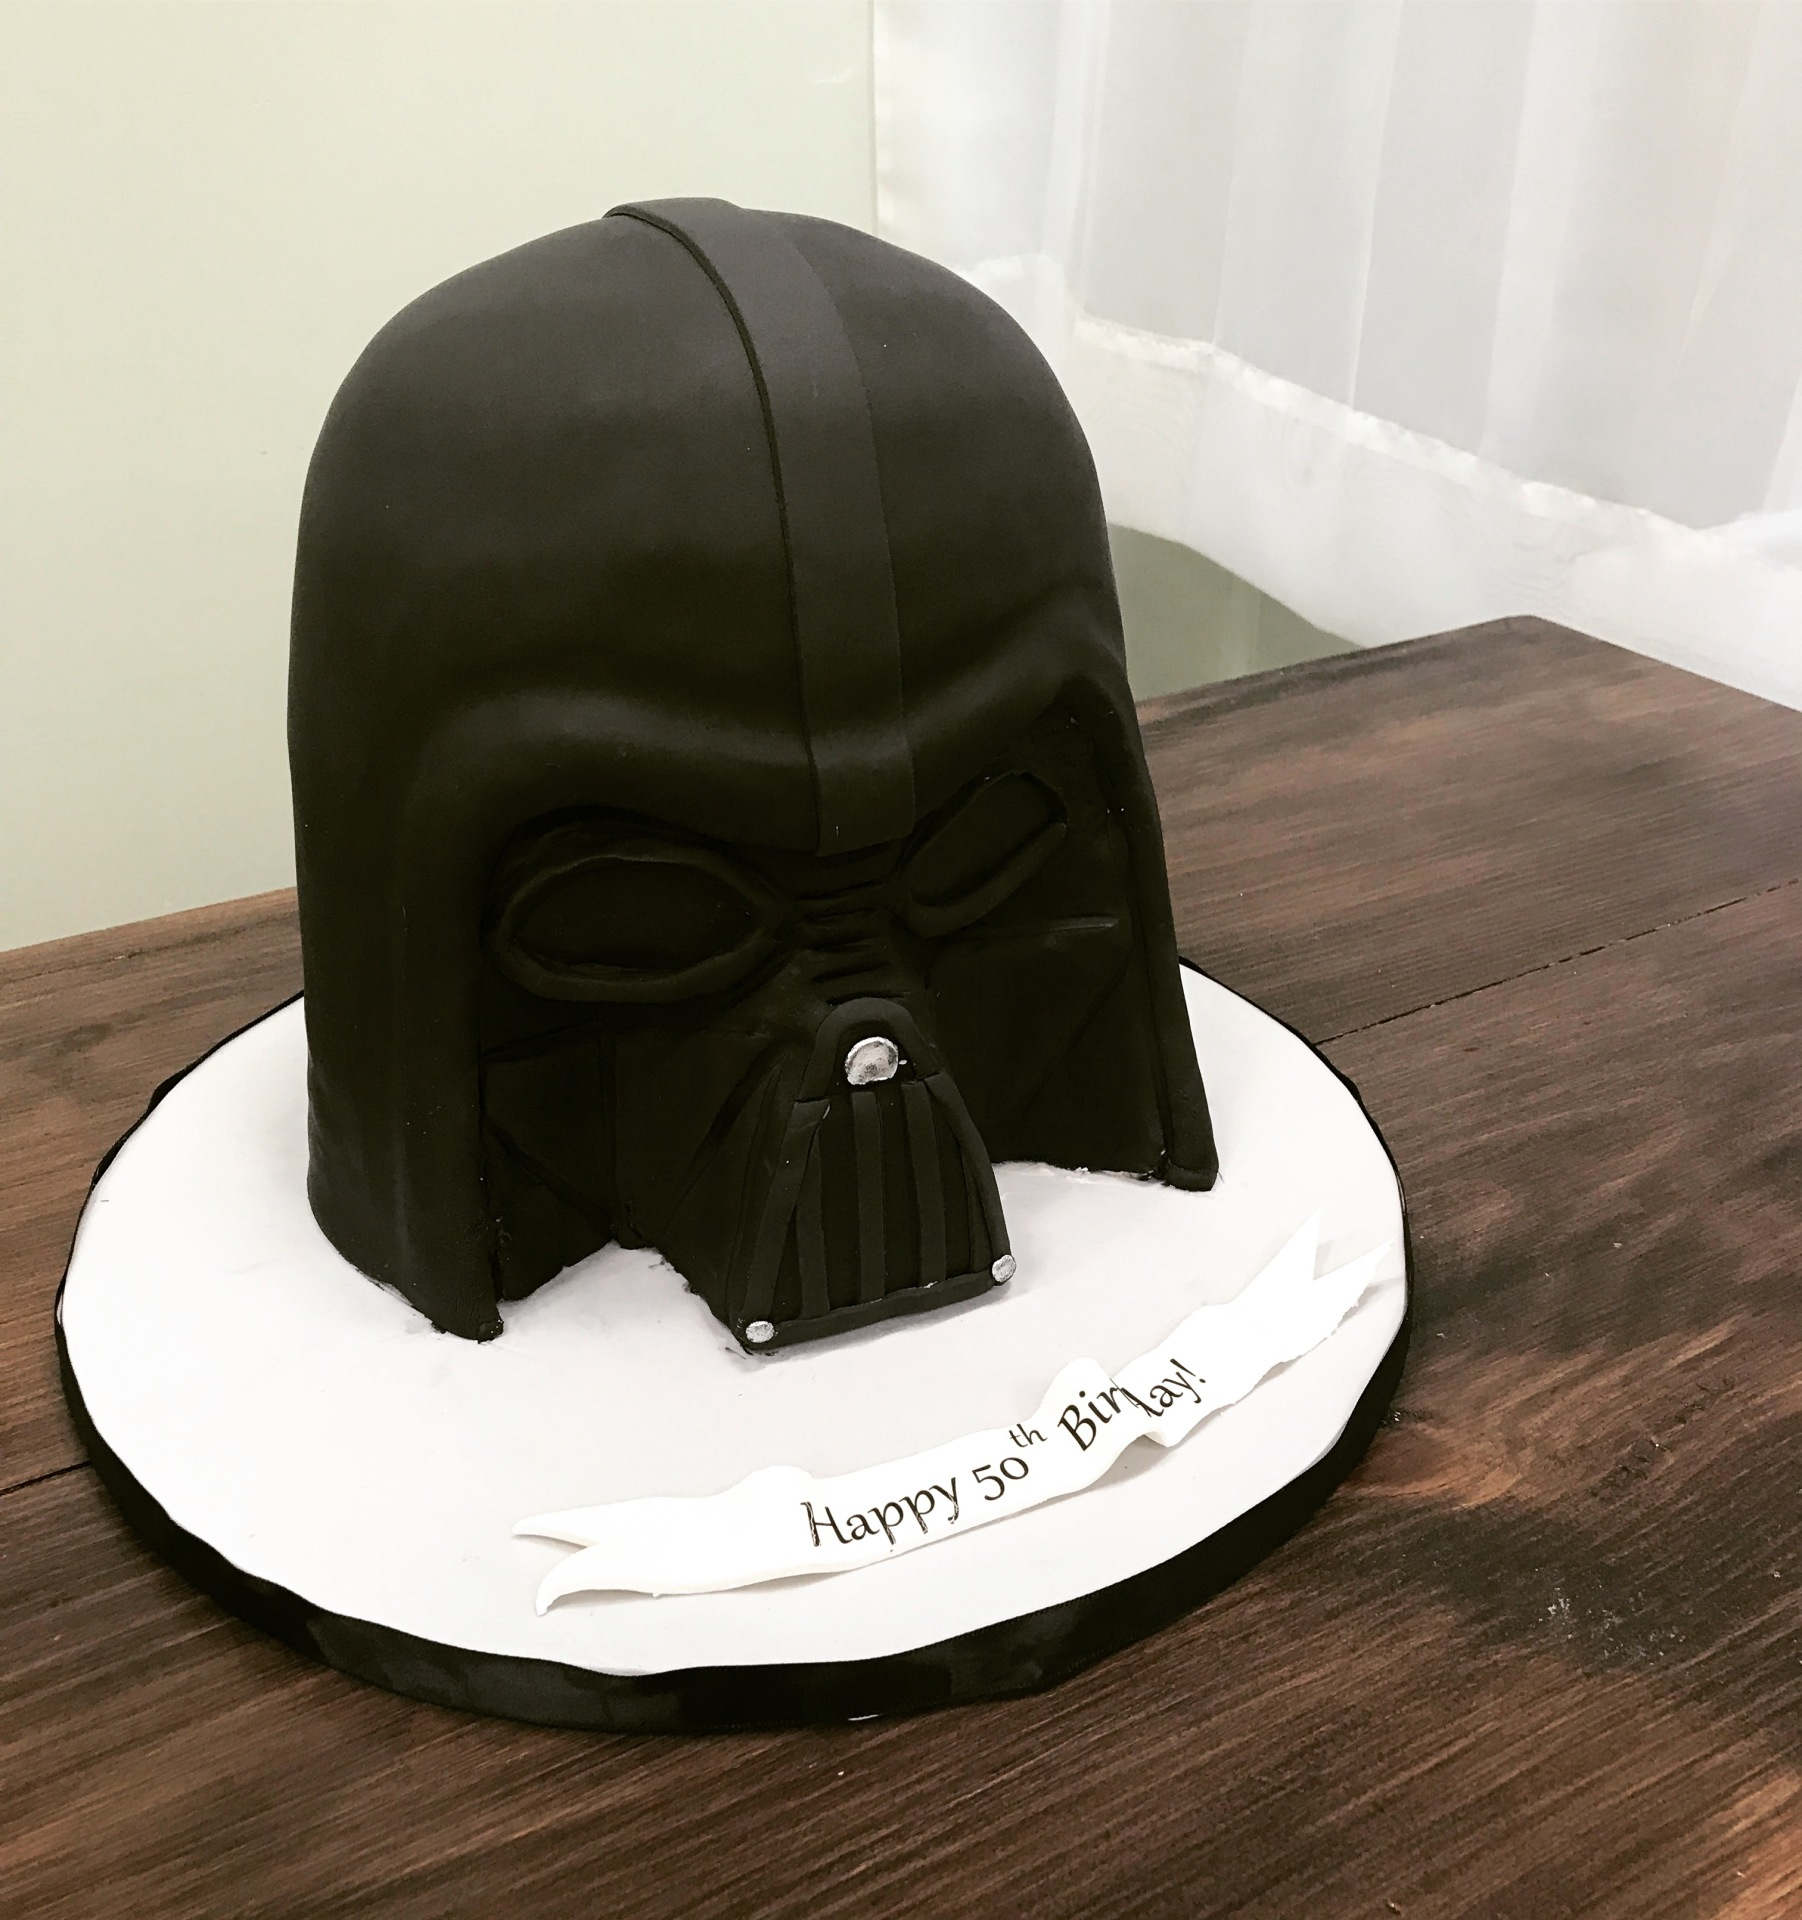 Custom Cakes NJ Darth Vader Star Wars Helmet Cake